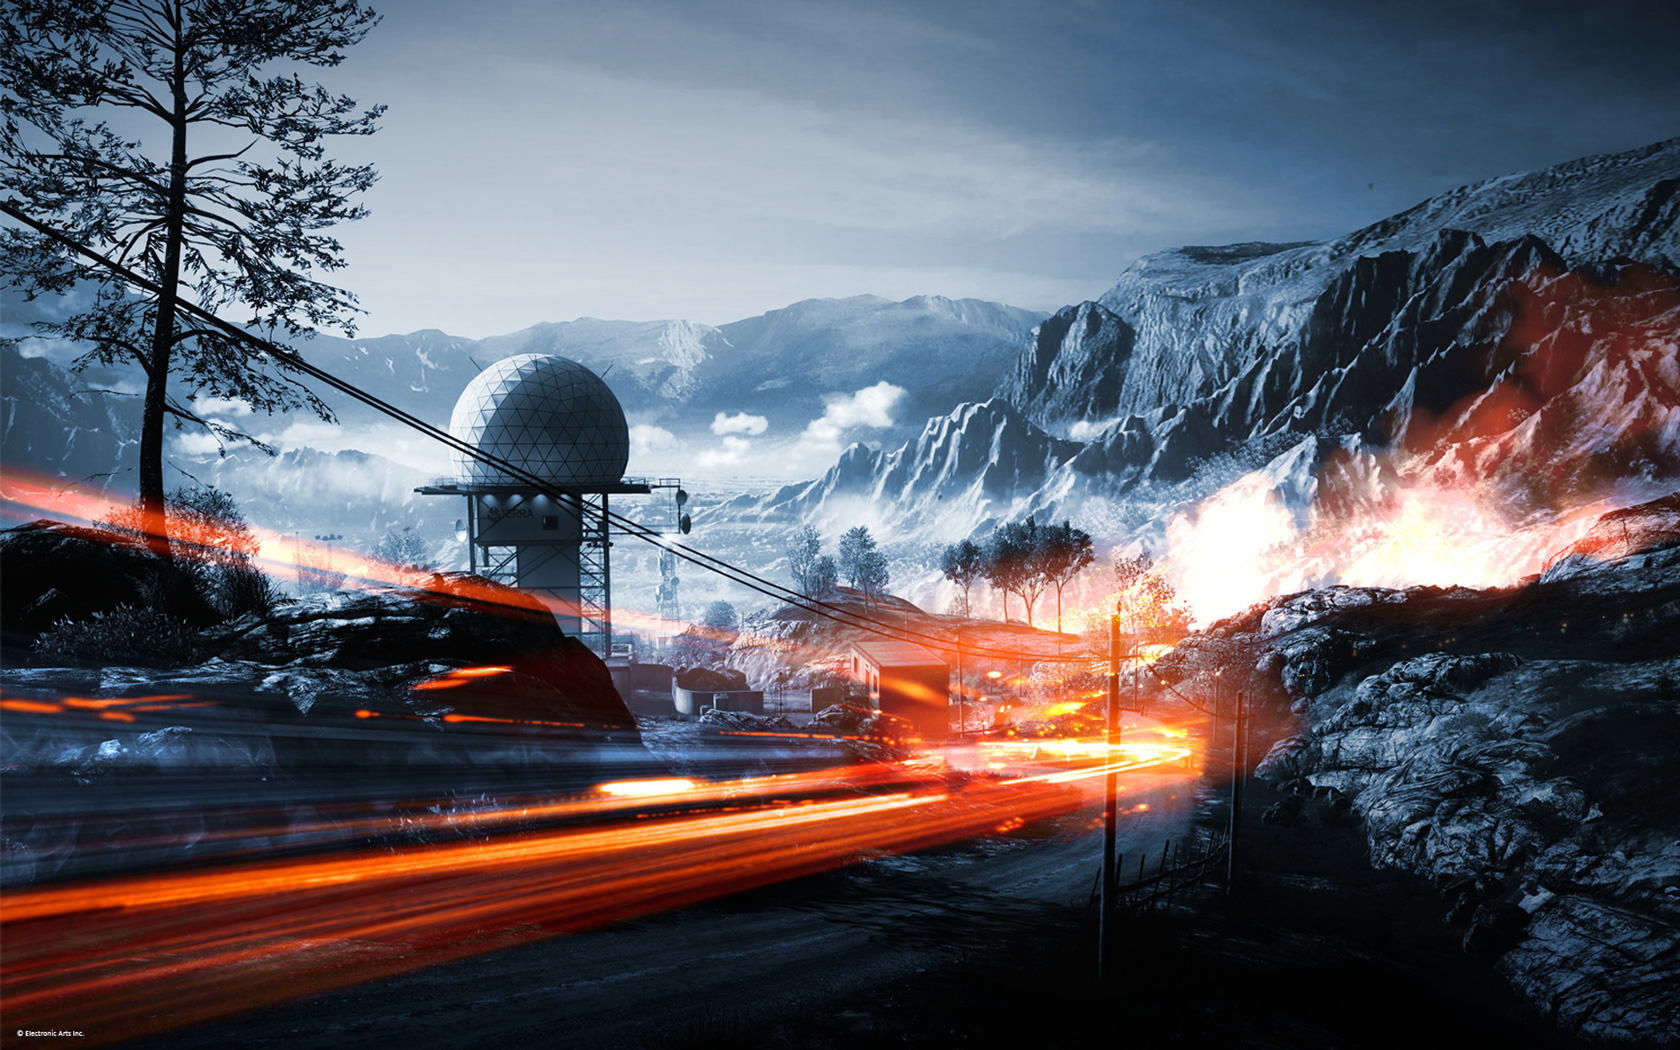 Free Battlefield 3 Wallpaper in 1680x1050